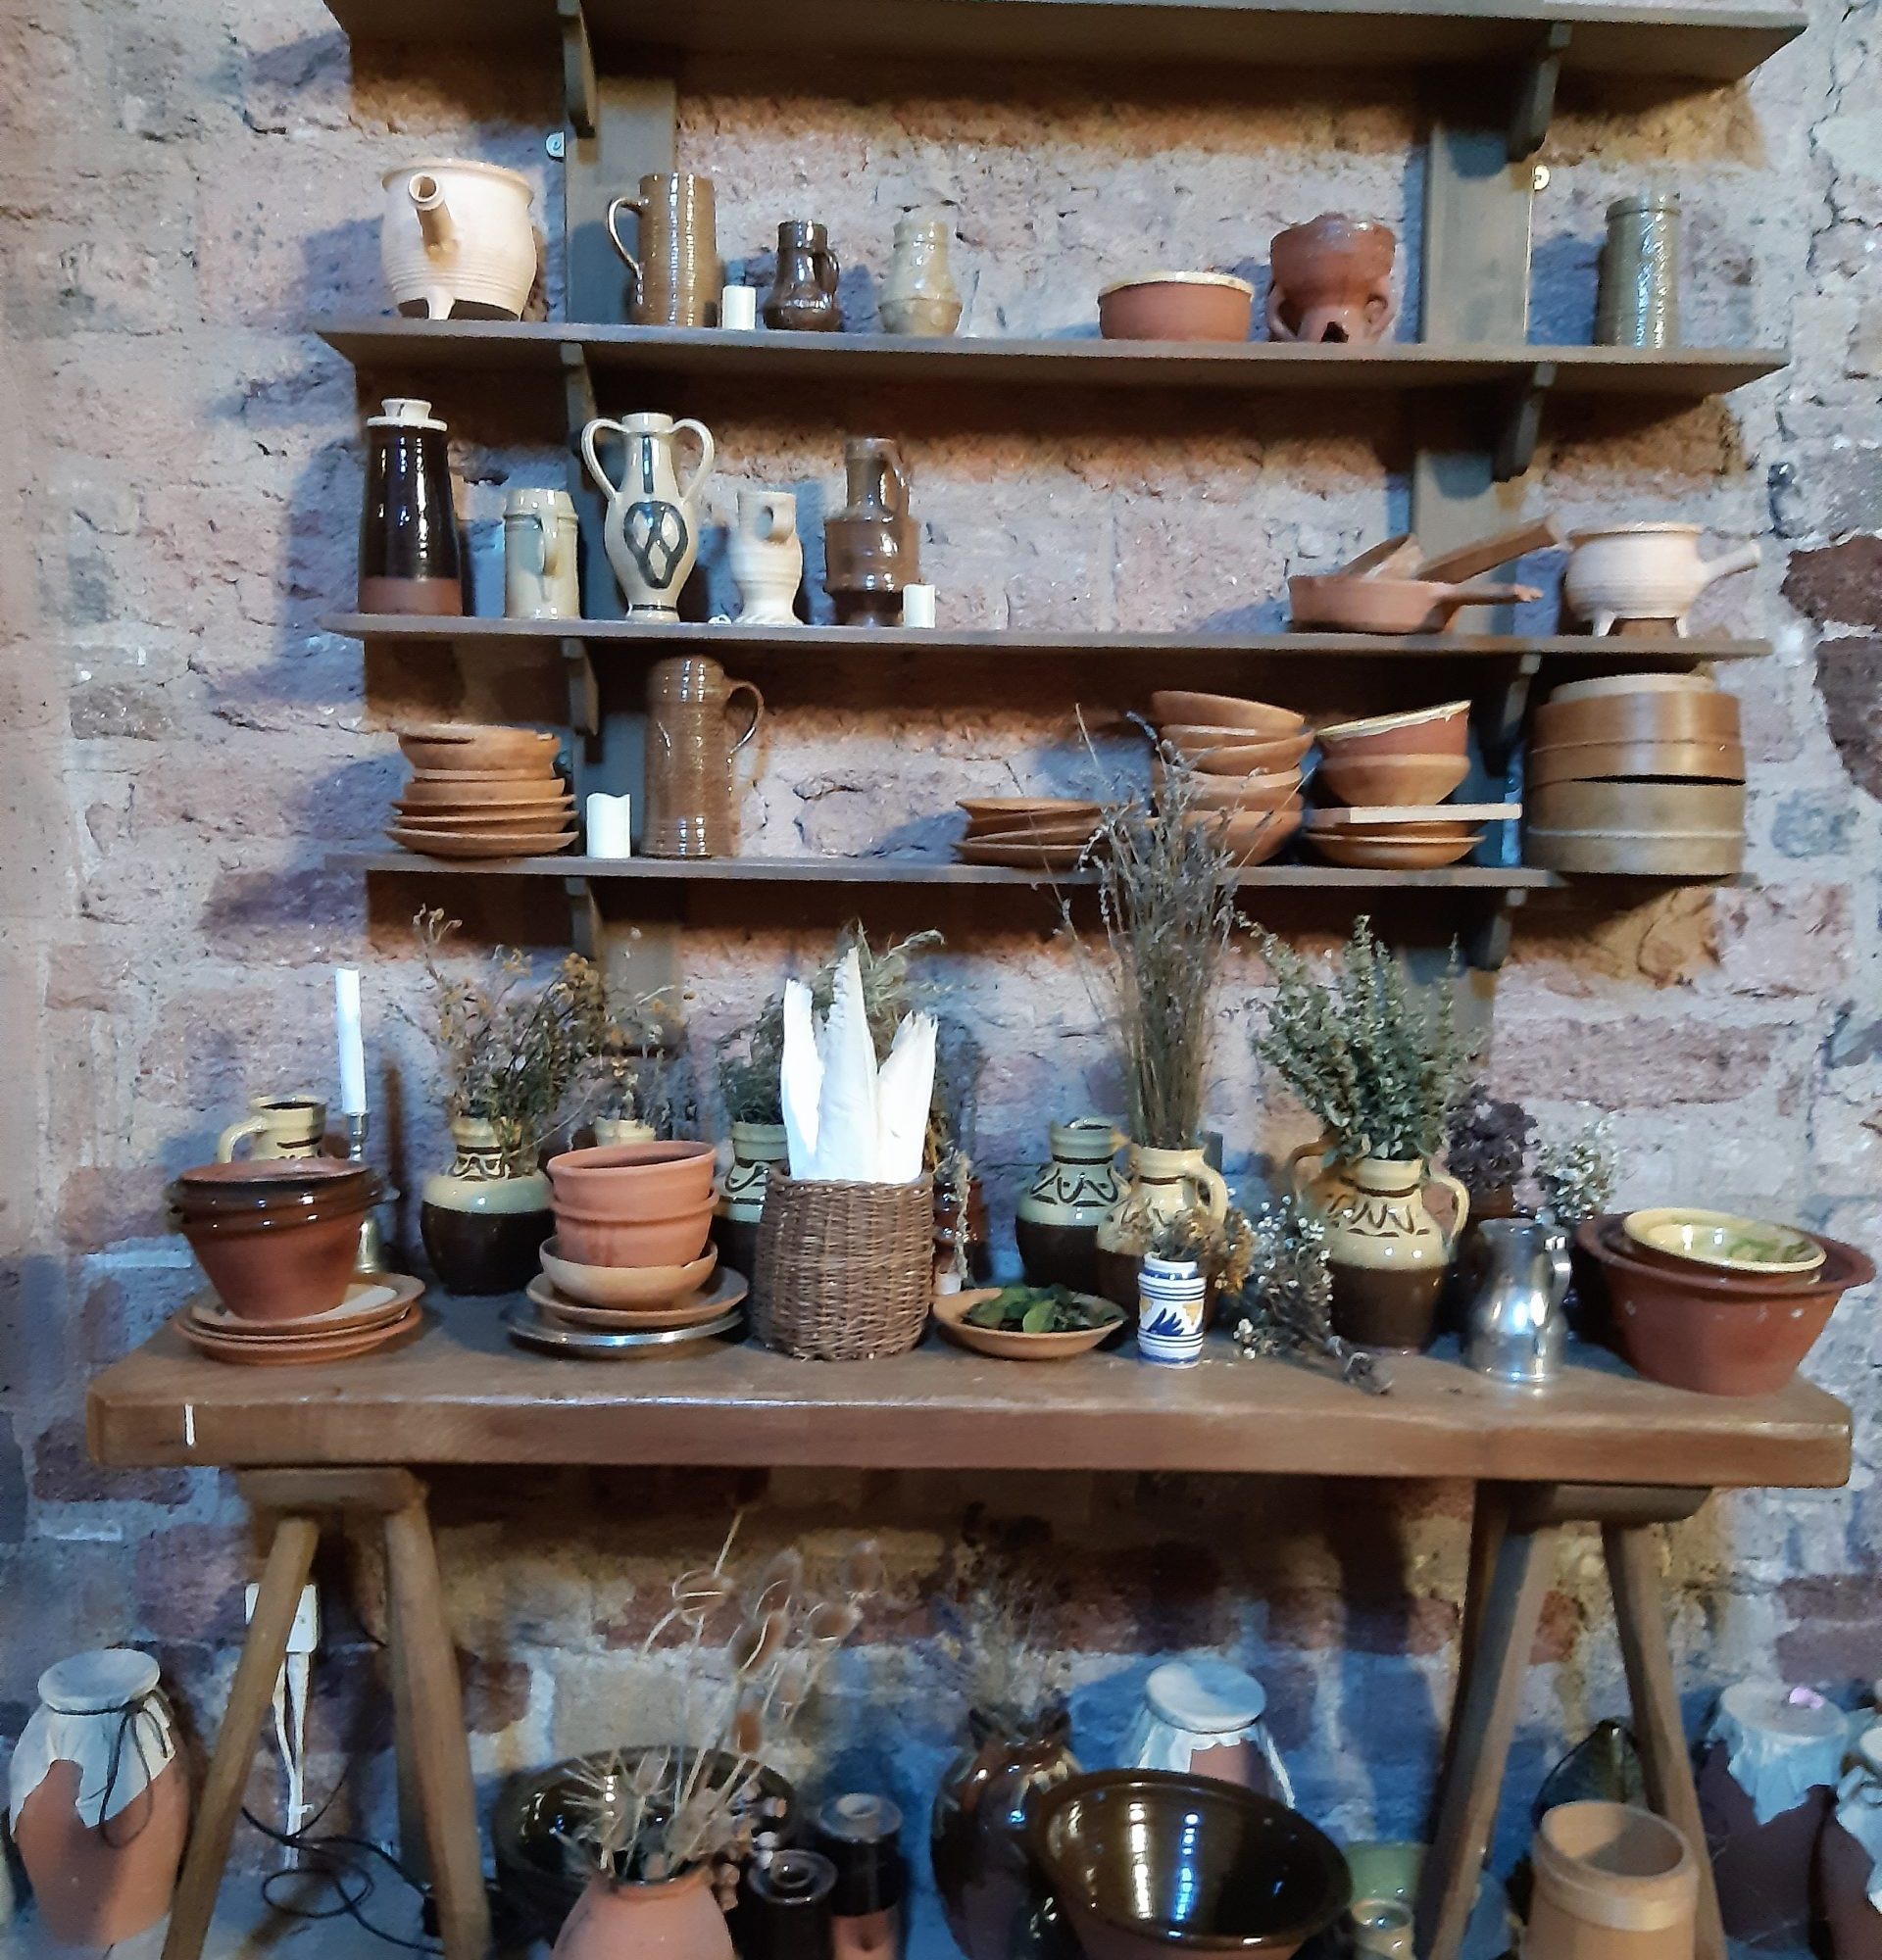 shelves with utensils